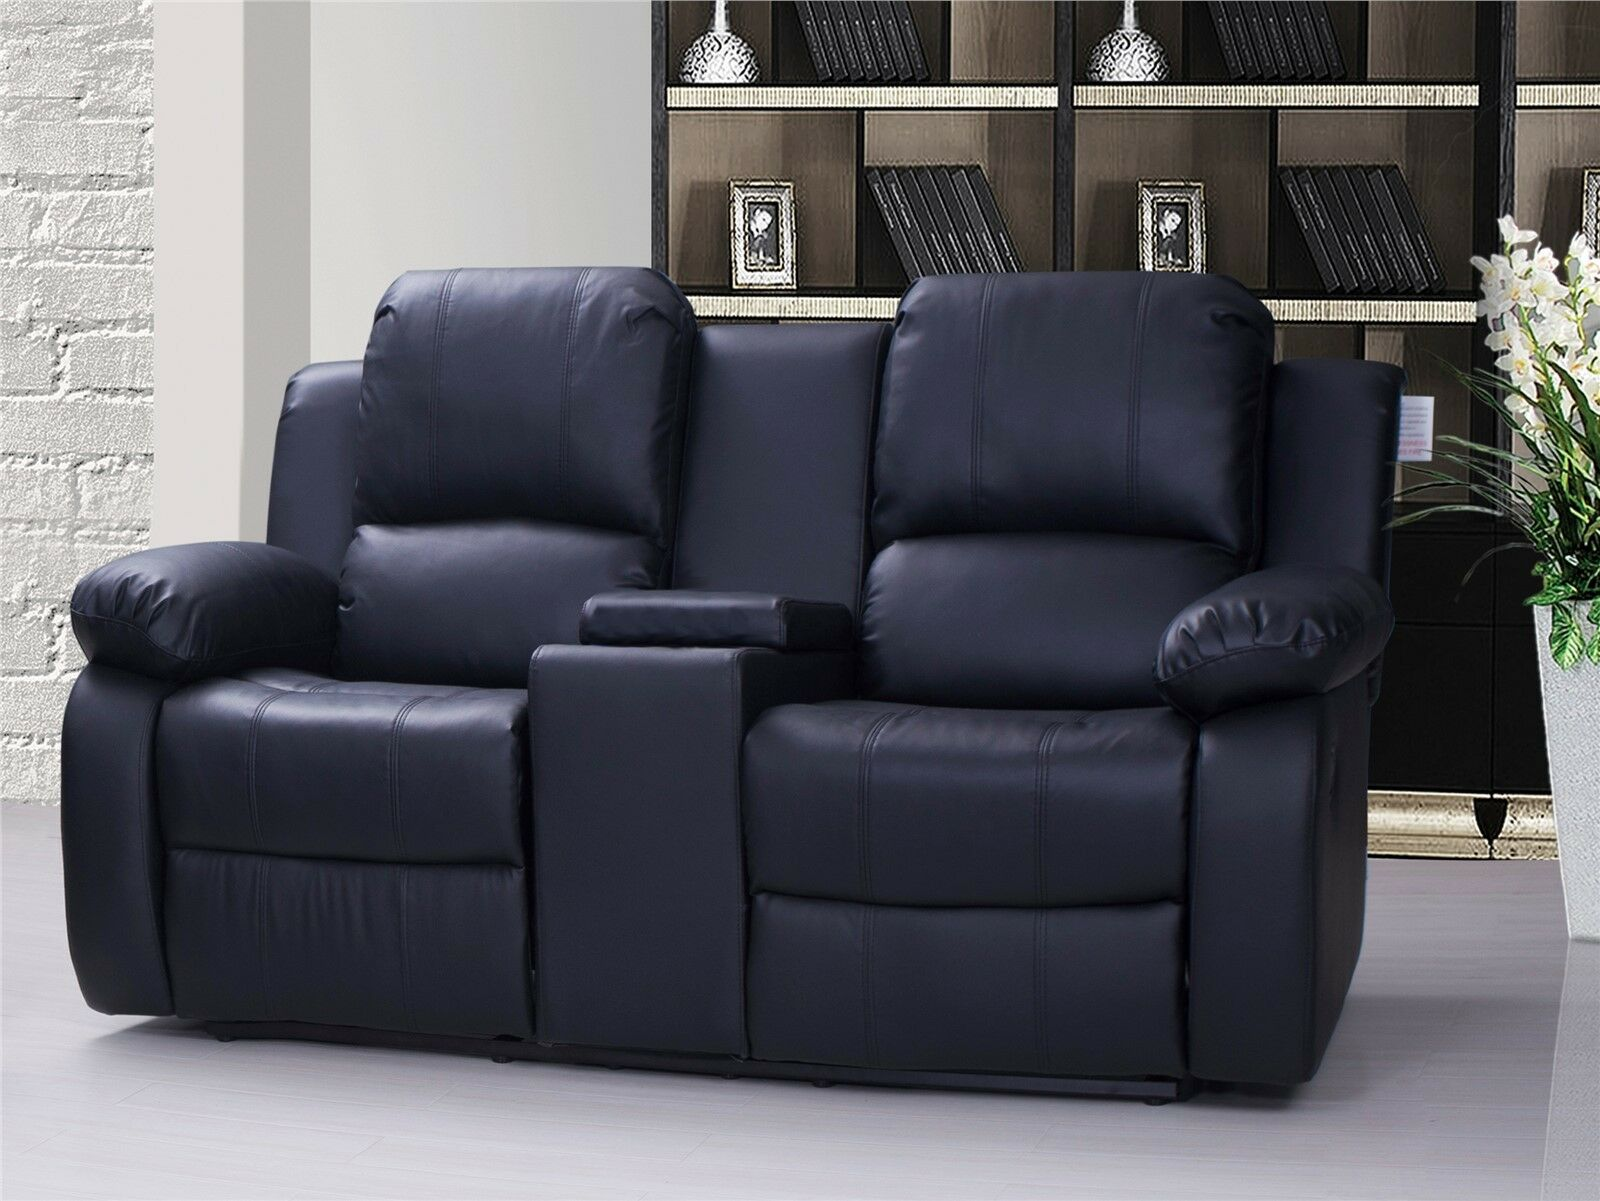 Small recliner sofa uk for Natuzzi outlet valencia